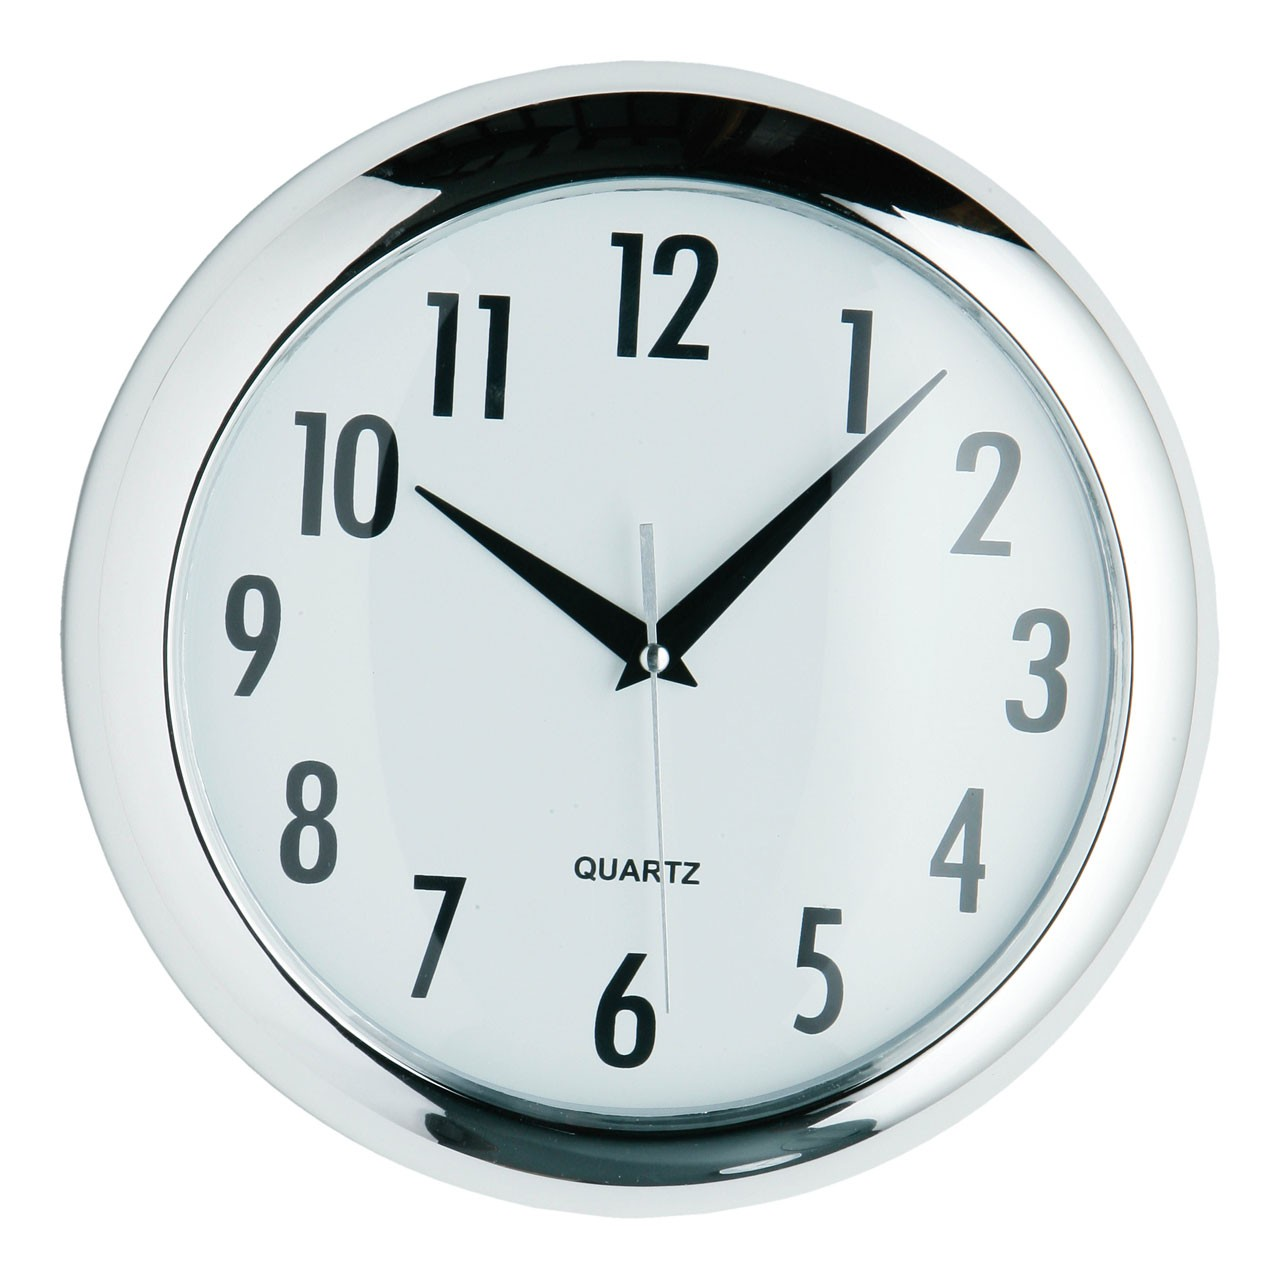 Round Halo Wall Clock - Chrome Finish